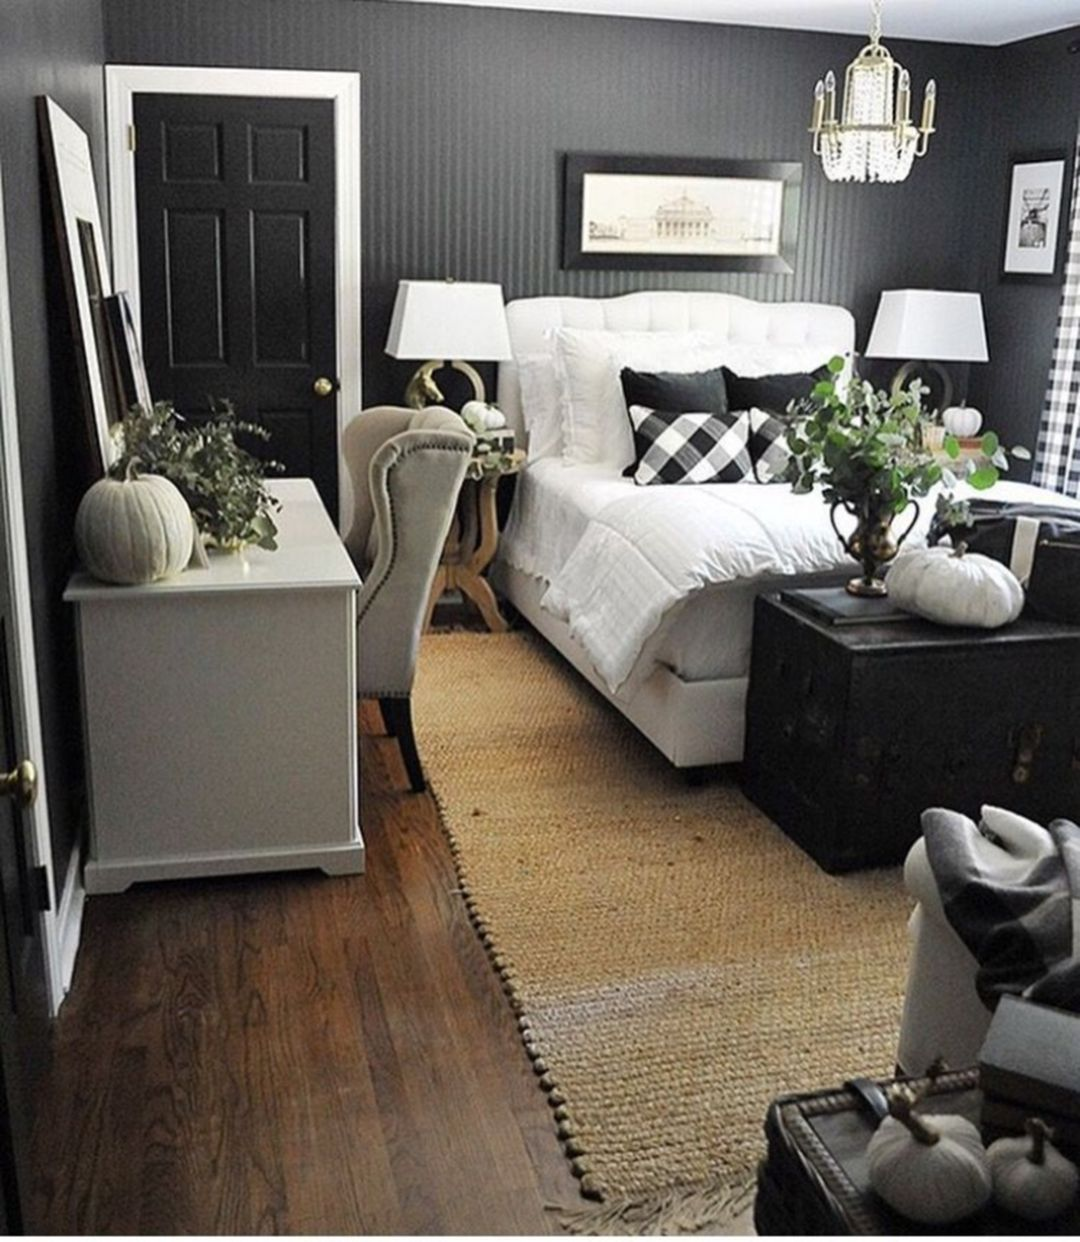 Bedroom Black And White Color Scheme Bedroom Waste Bins One Wall Bedroom Paint Ideas Bedroom Design Natural Style: 30 Chic Stylish Bedroom With Black And White Color Schemes